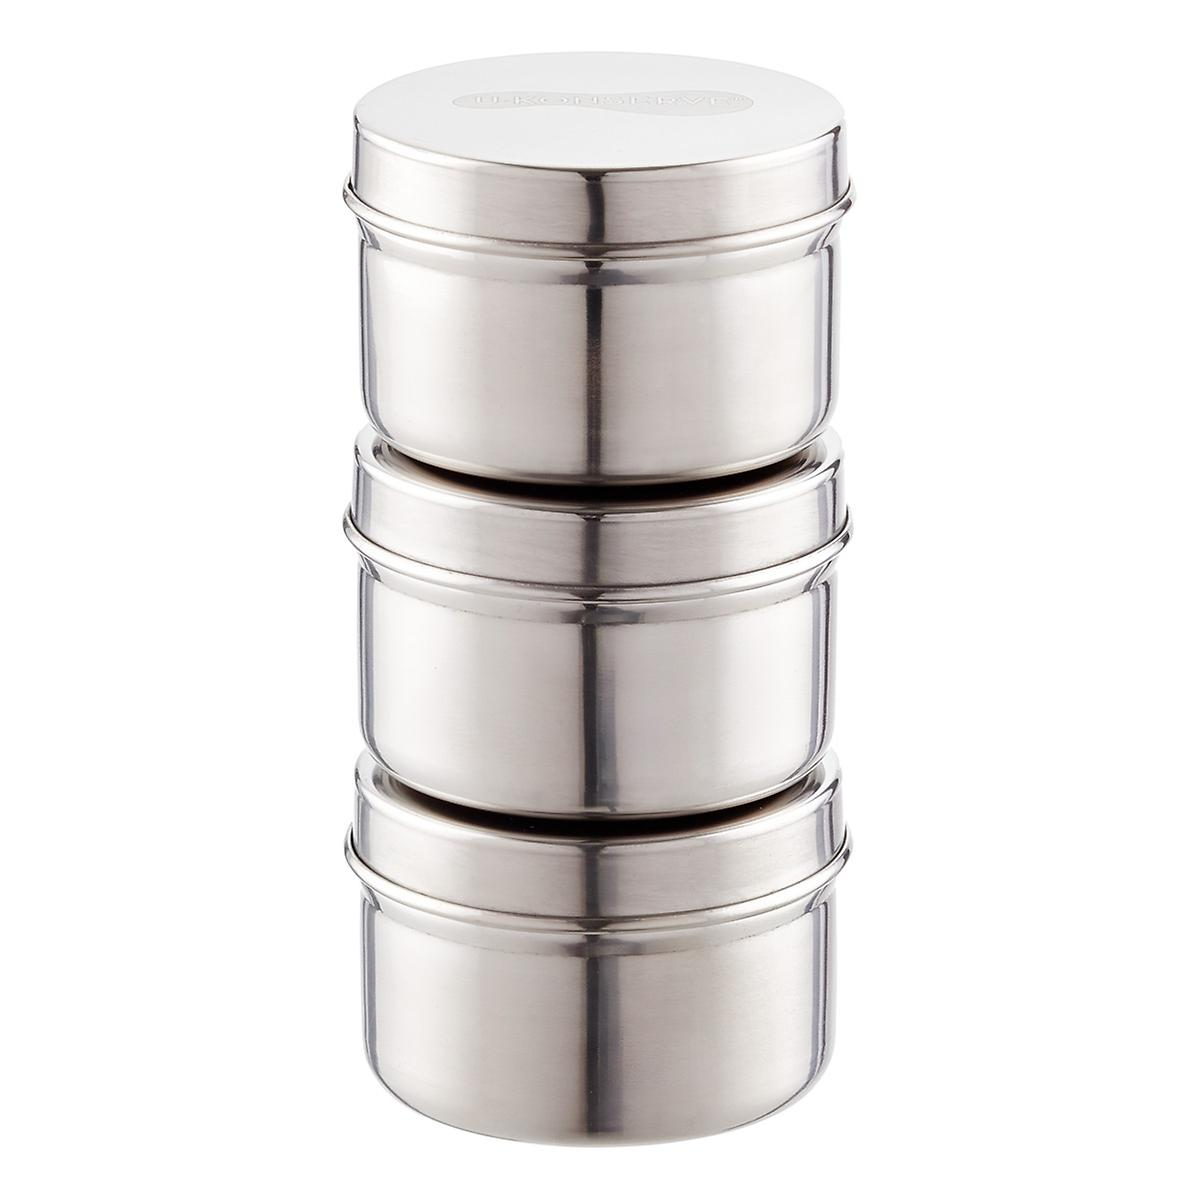 3 oz. Stainless Steel Containers